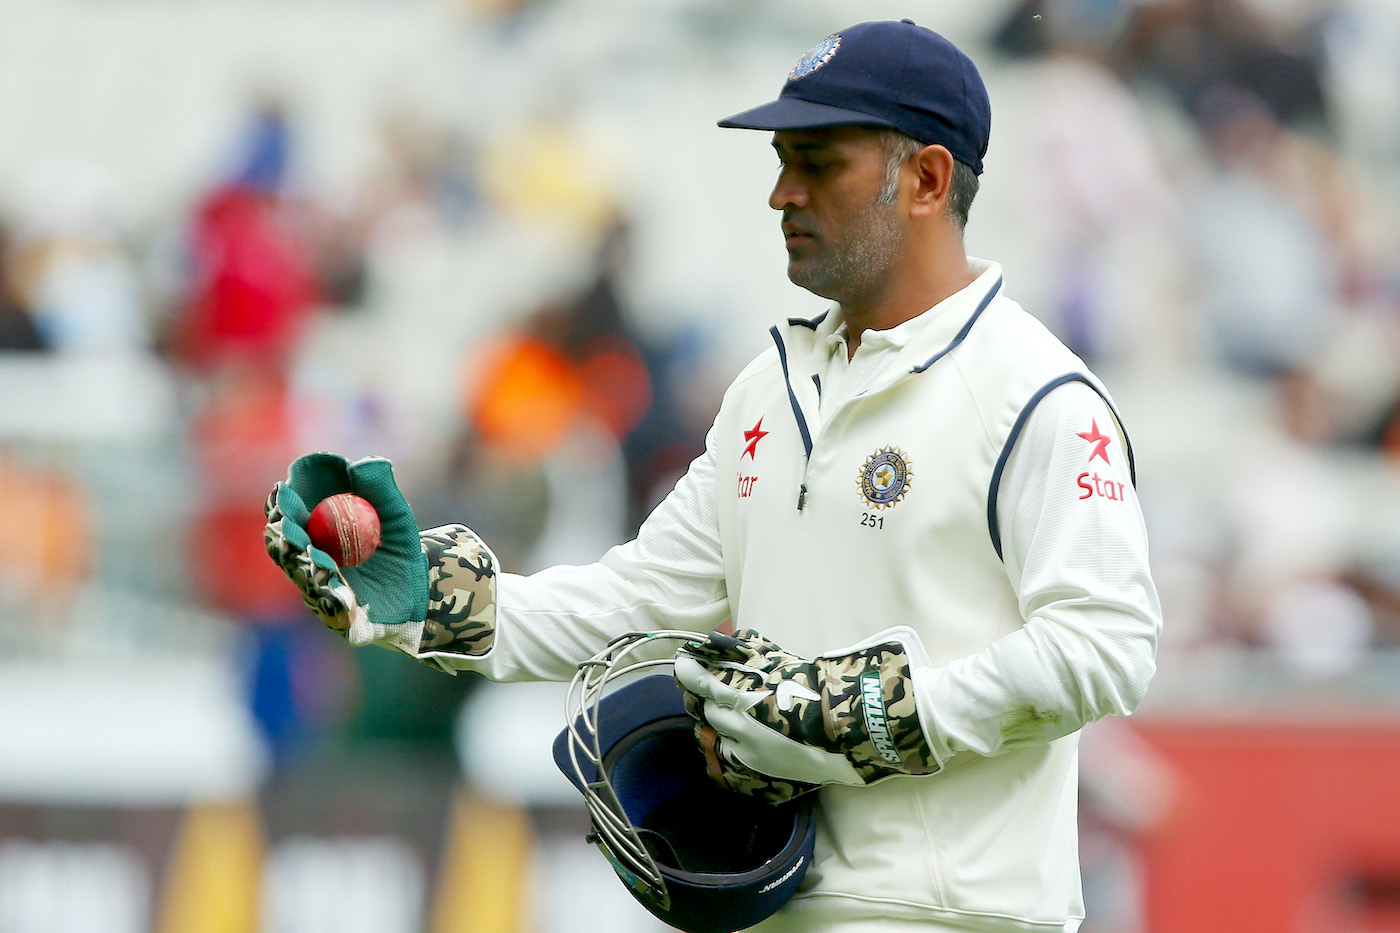 MS Dhoni captained in 60 Tests, easily the most for a wicketkeeper